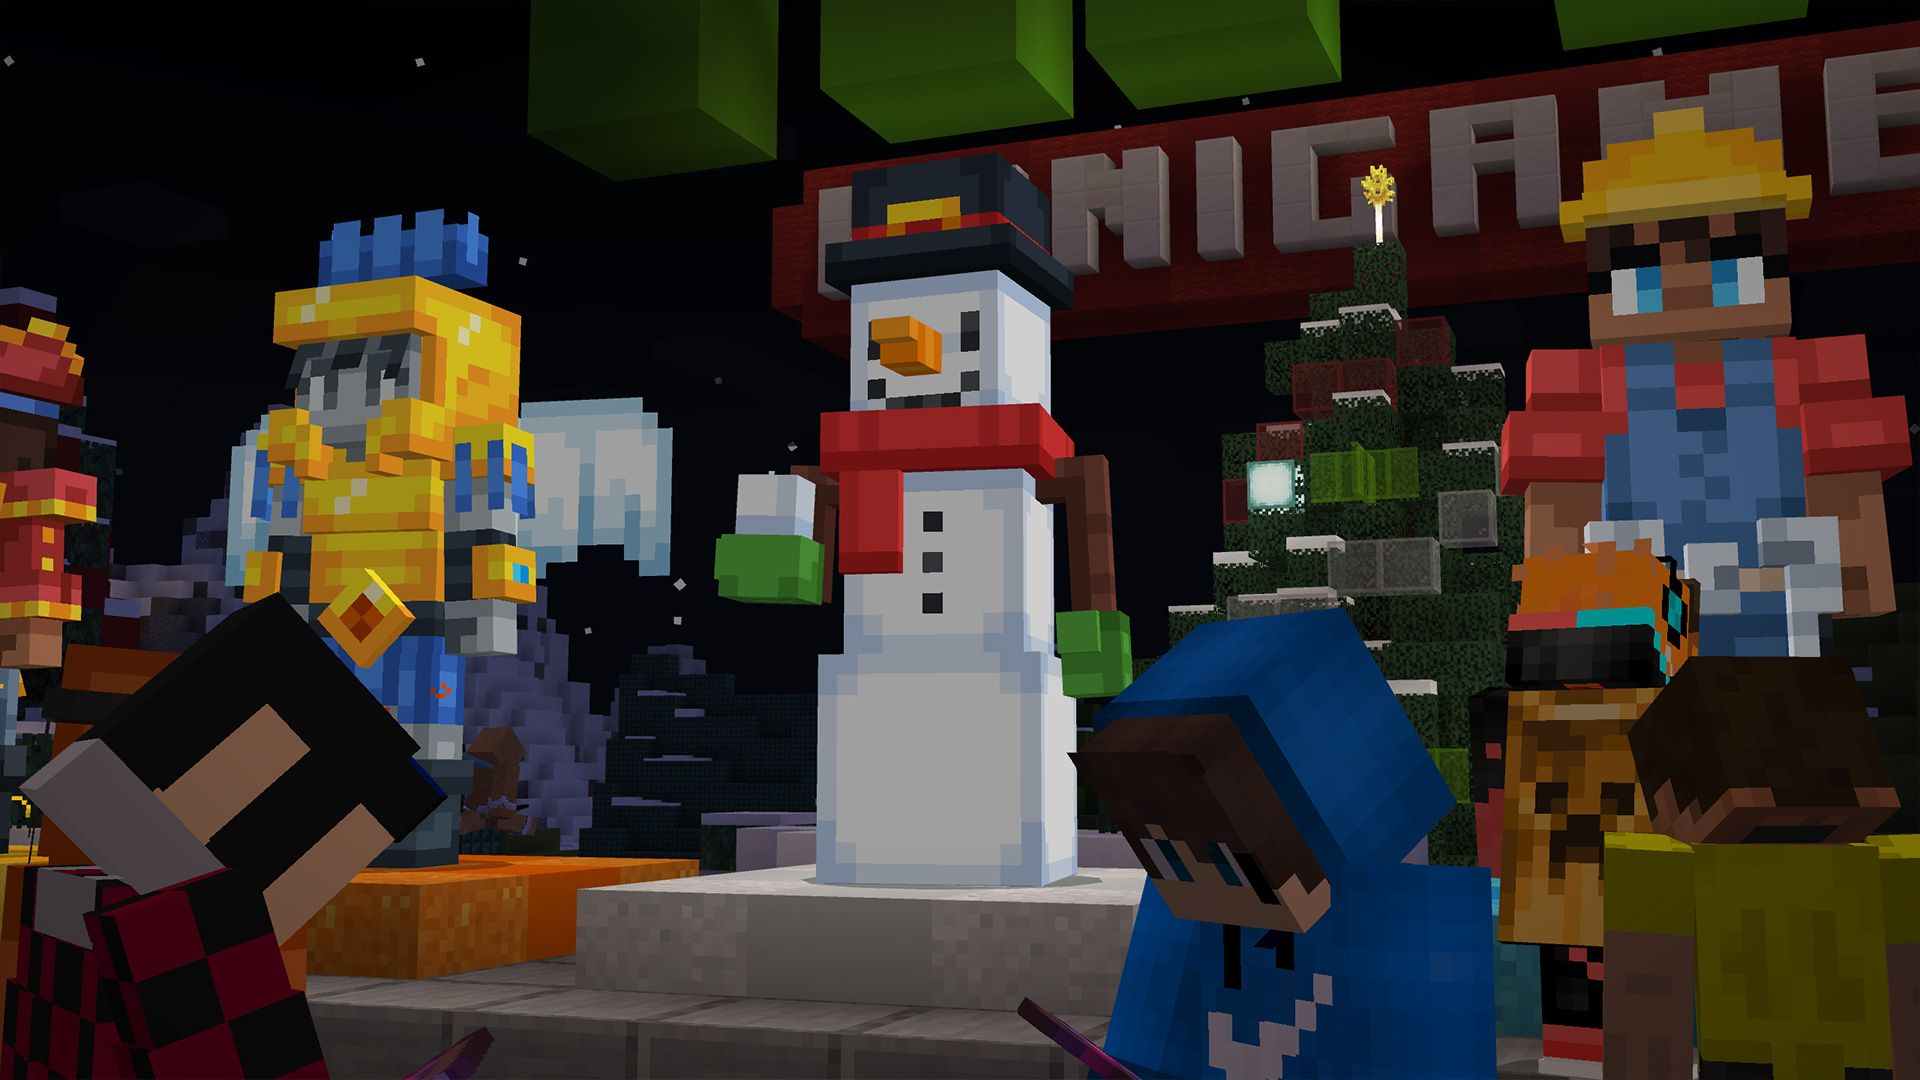 A row of NPCs is seen, with the focus on a new snowman NPC, holding a snowball.